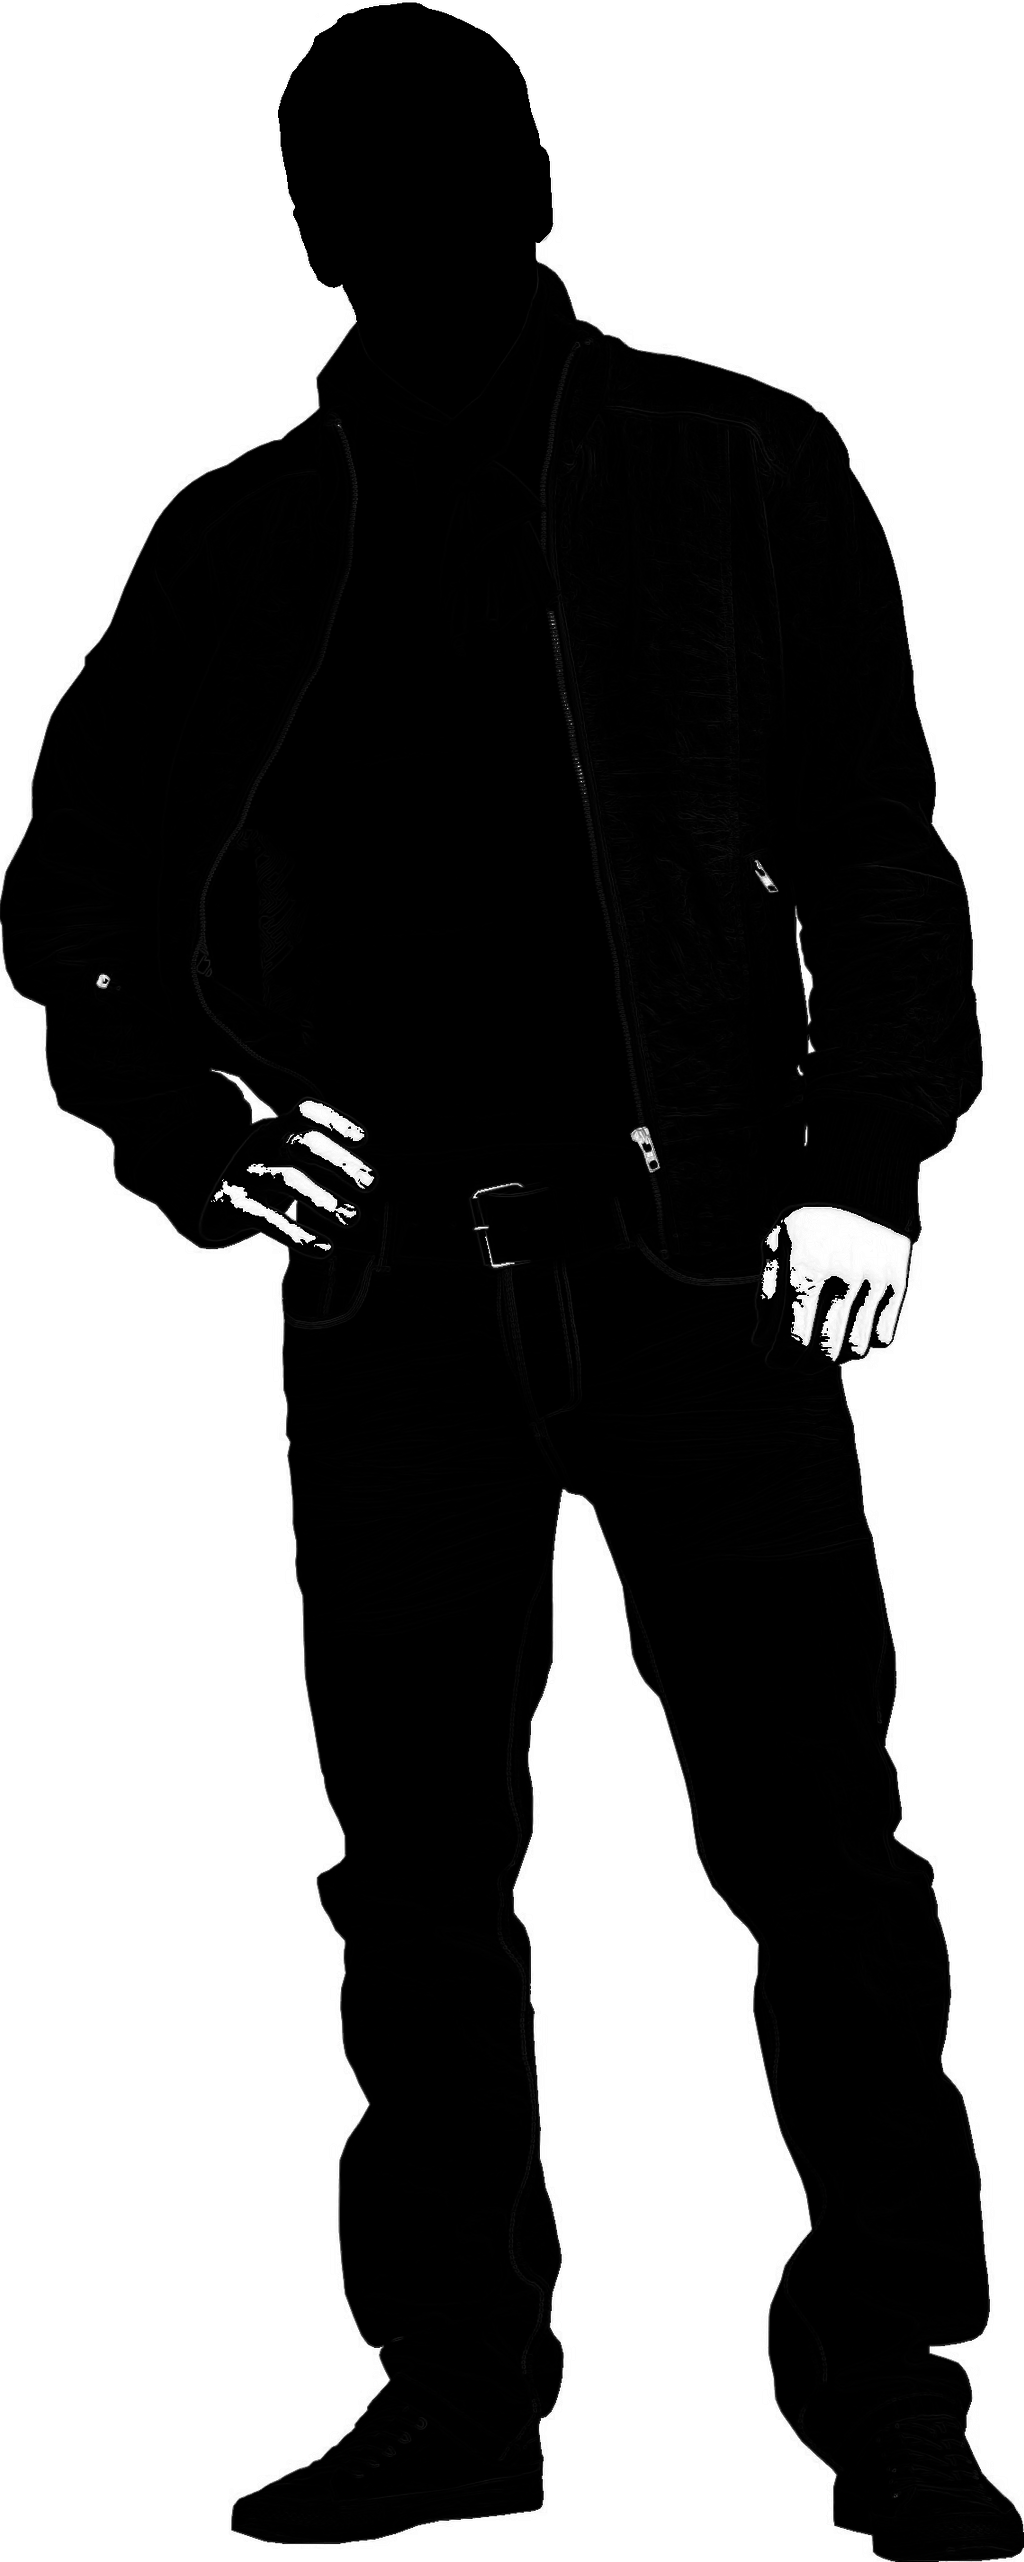 Male models clipart black and white svg freeuse Free Male Silhouette Png, Download Free Clip Art, Free Clip Art on ... svg freeuse